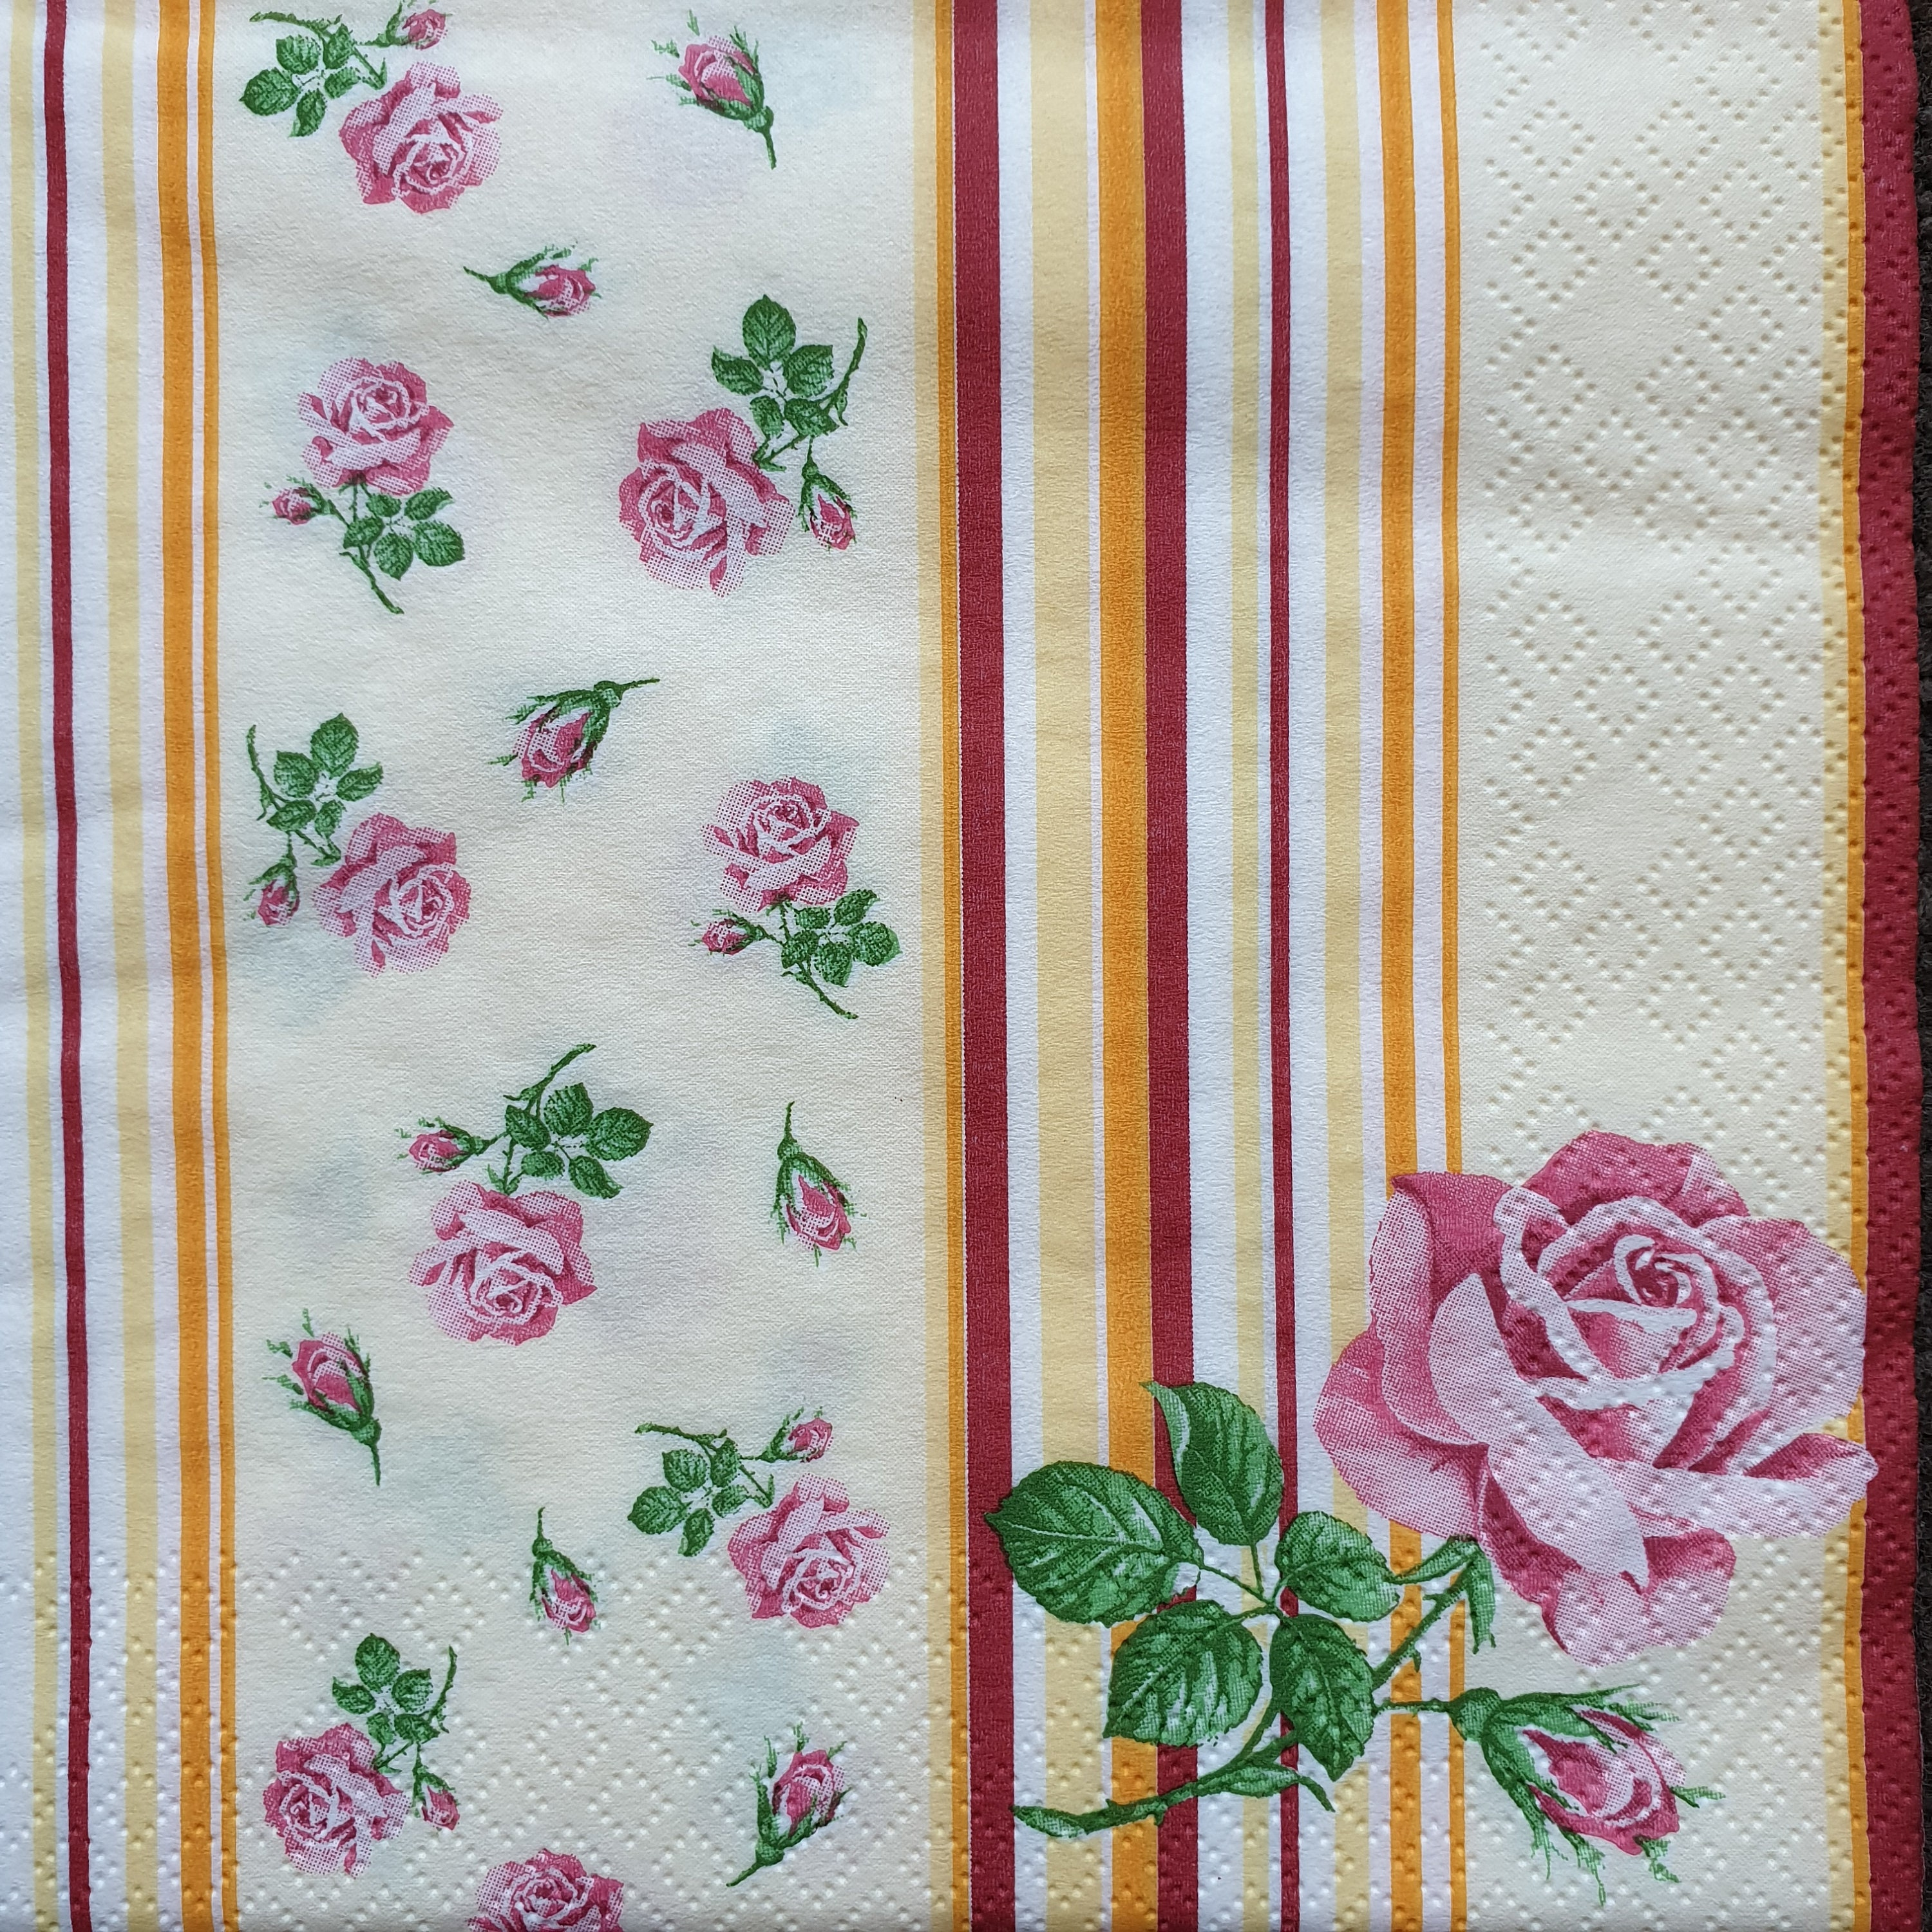 3-ply Pack of 4 Individual Napkins Embroidery Flowers Rose 4 Paper Napkins for Decoupage 33 x 33cm